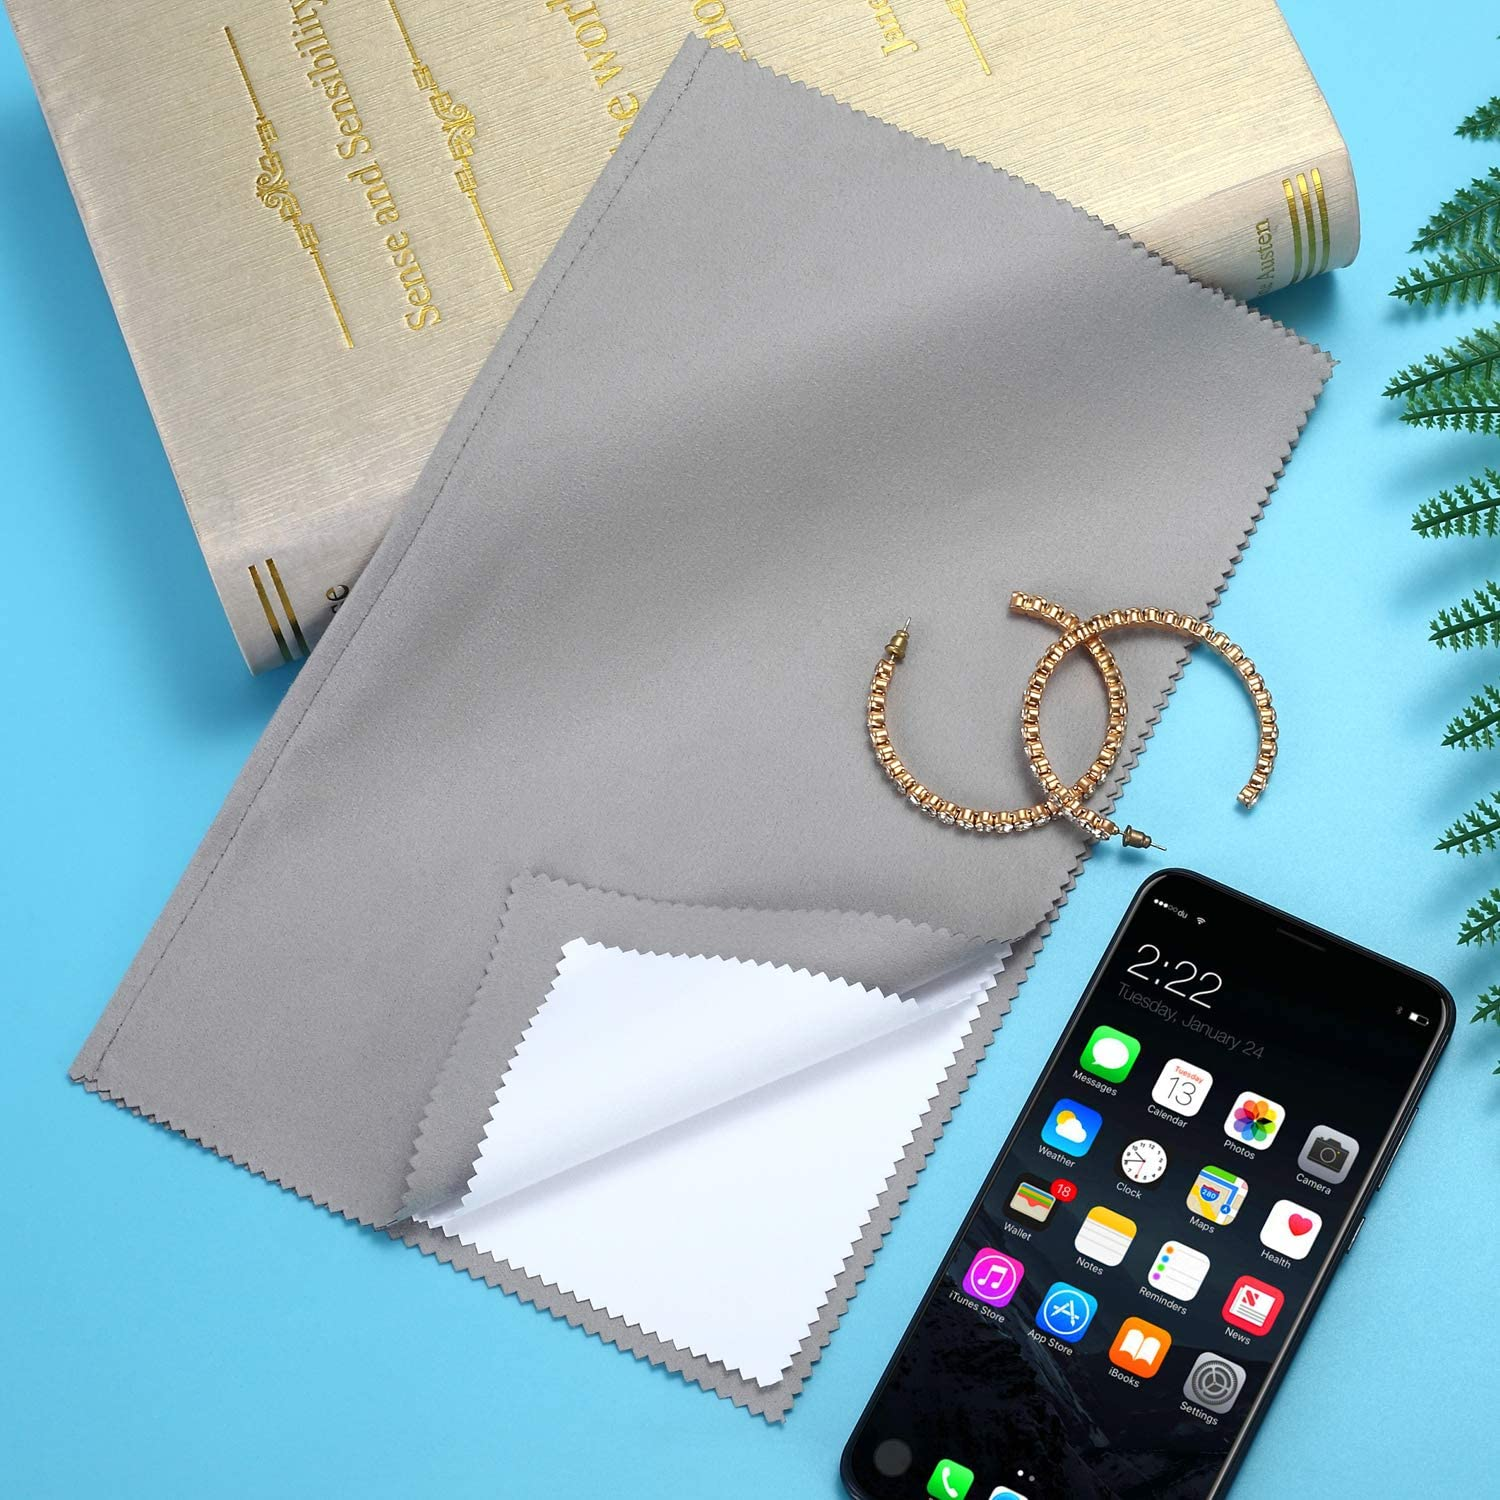 5 Pack Polishing Cloth 100/% Cotton Large Jewelry Cleaning Cloths for Gold Silver and Platinum Jewelry Coins Watches and Silverware Polish and Shine Remove Tarnish 11 x 14